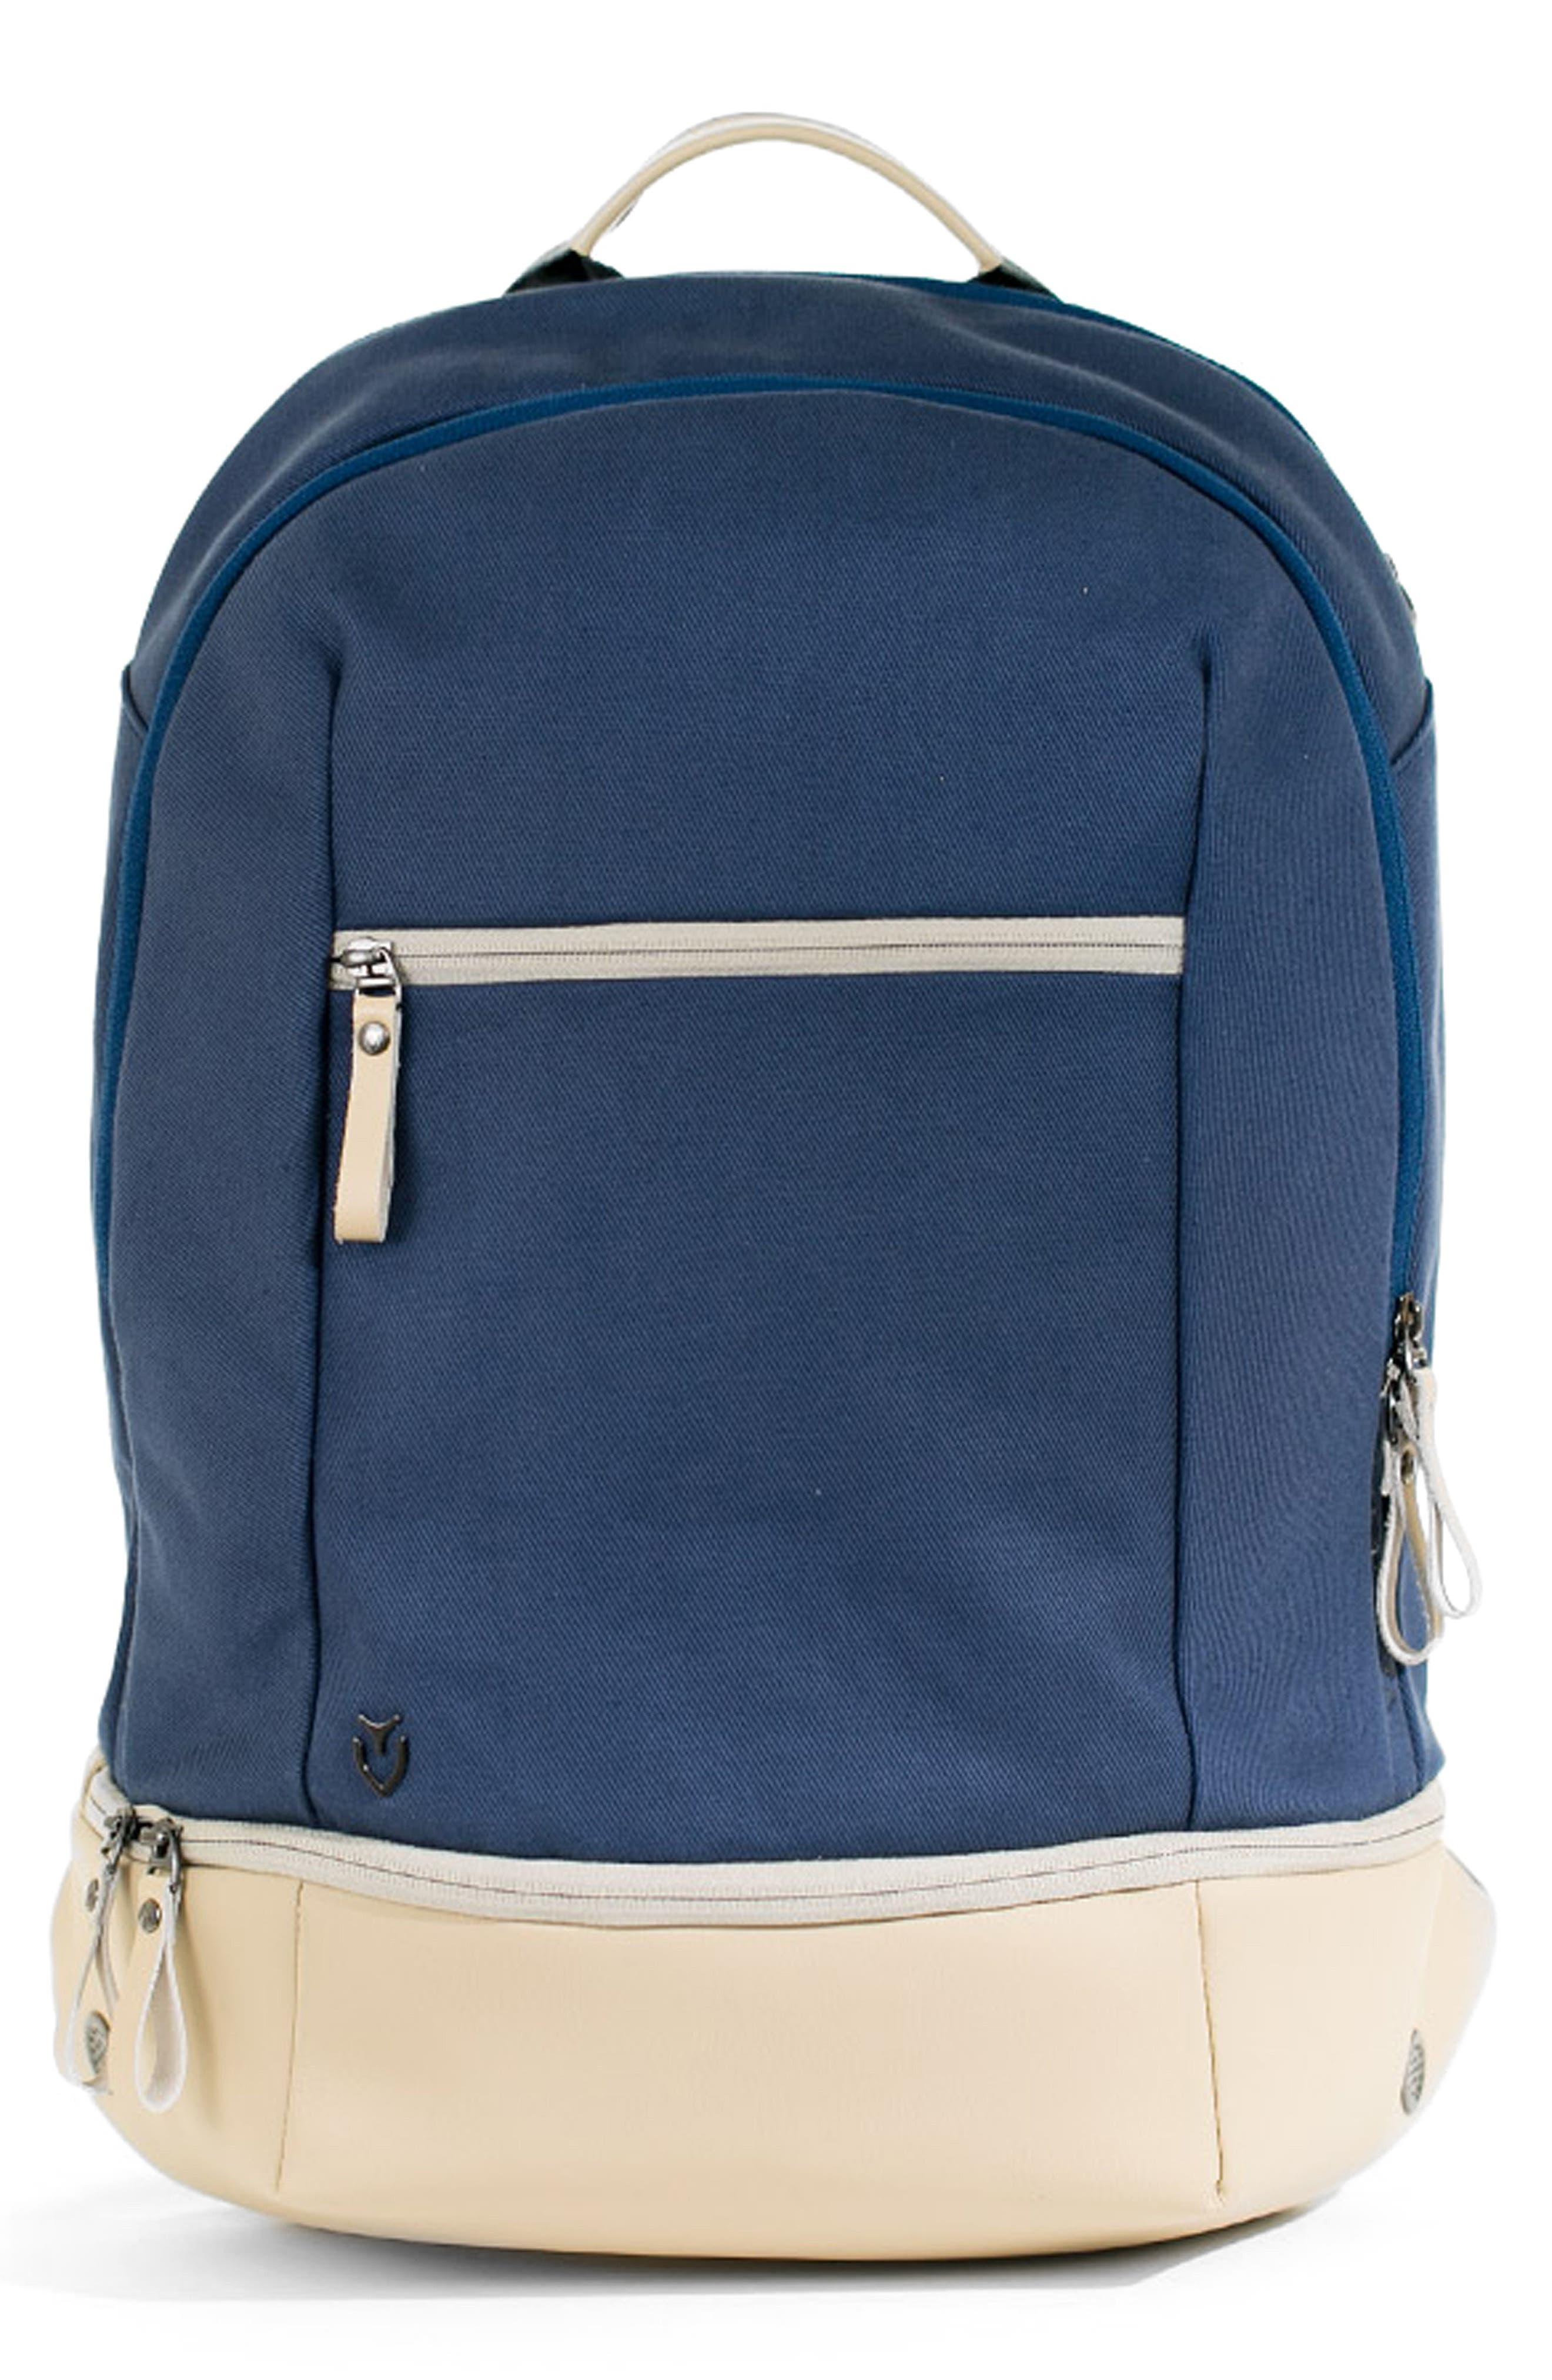 Signature Backpack,                         Main,                         color, Navy